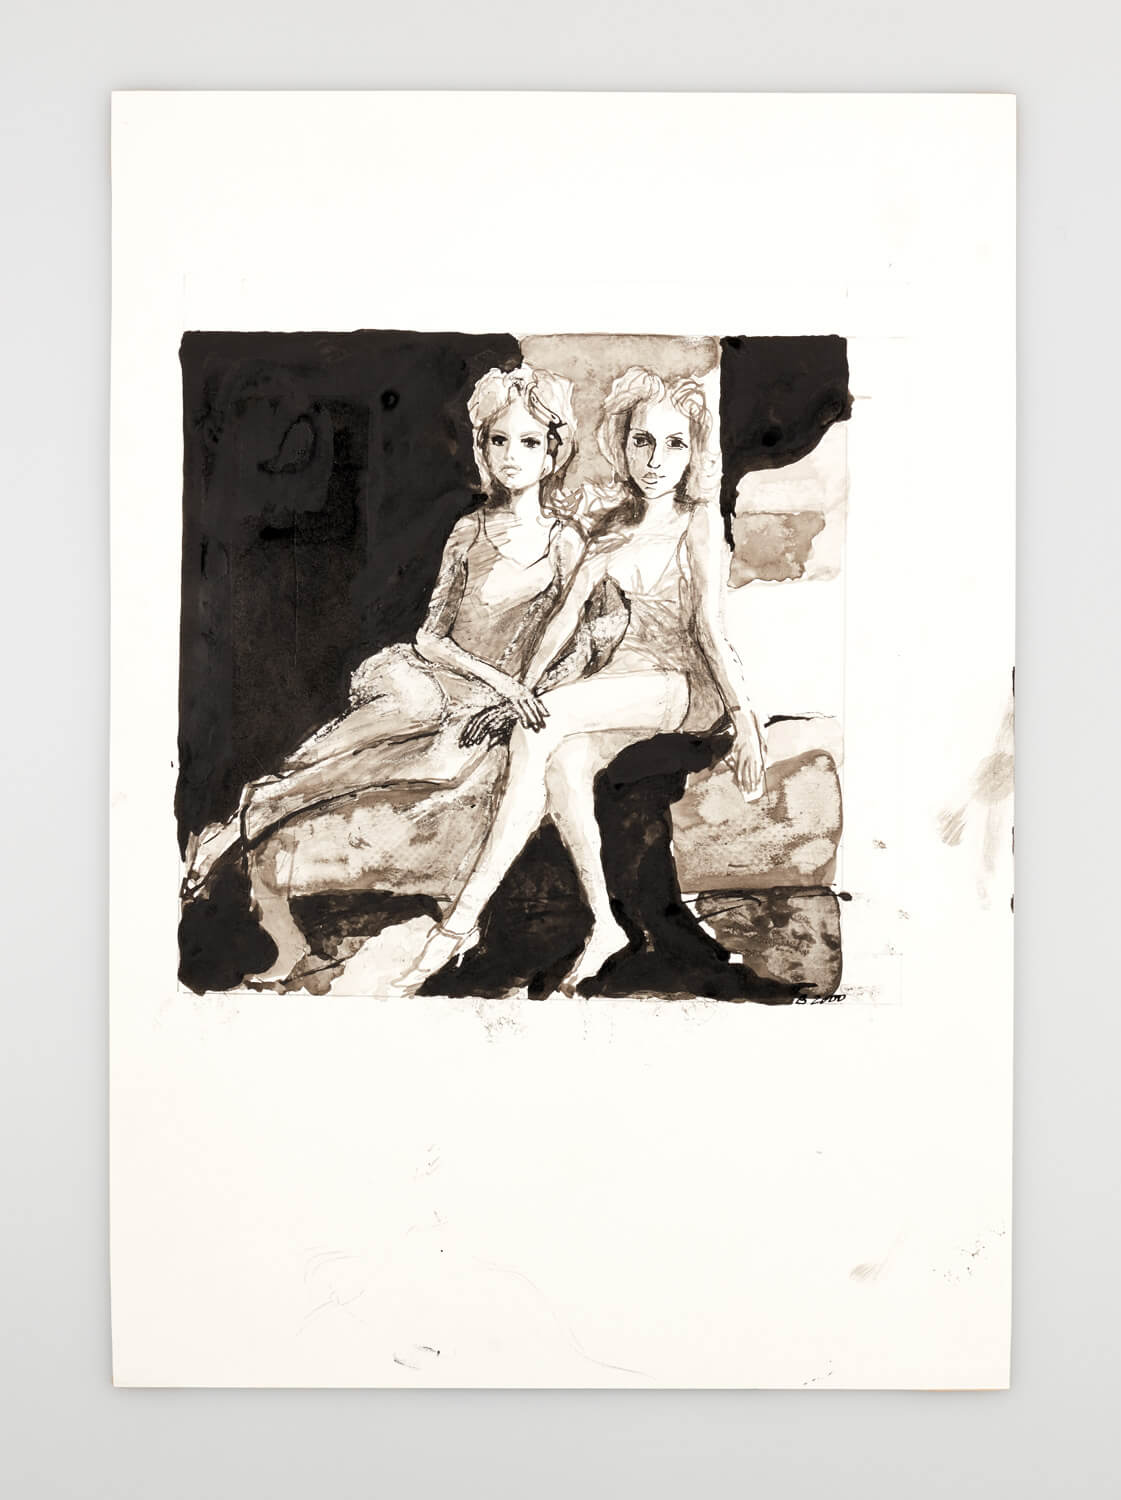 JB114 - Two Mannequins in a bedroom - 2000 - 26 x 26 cm - Indian ink and wash on paper